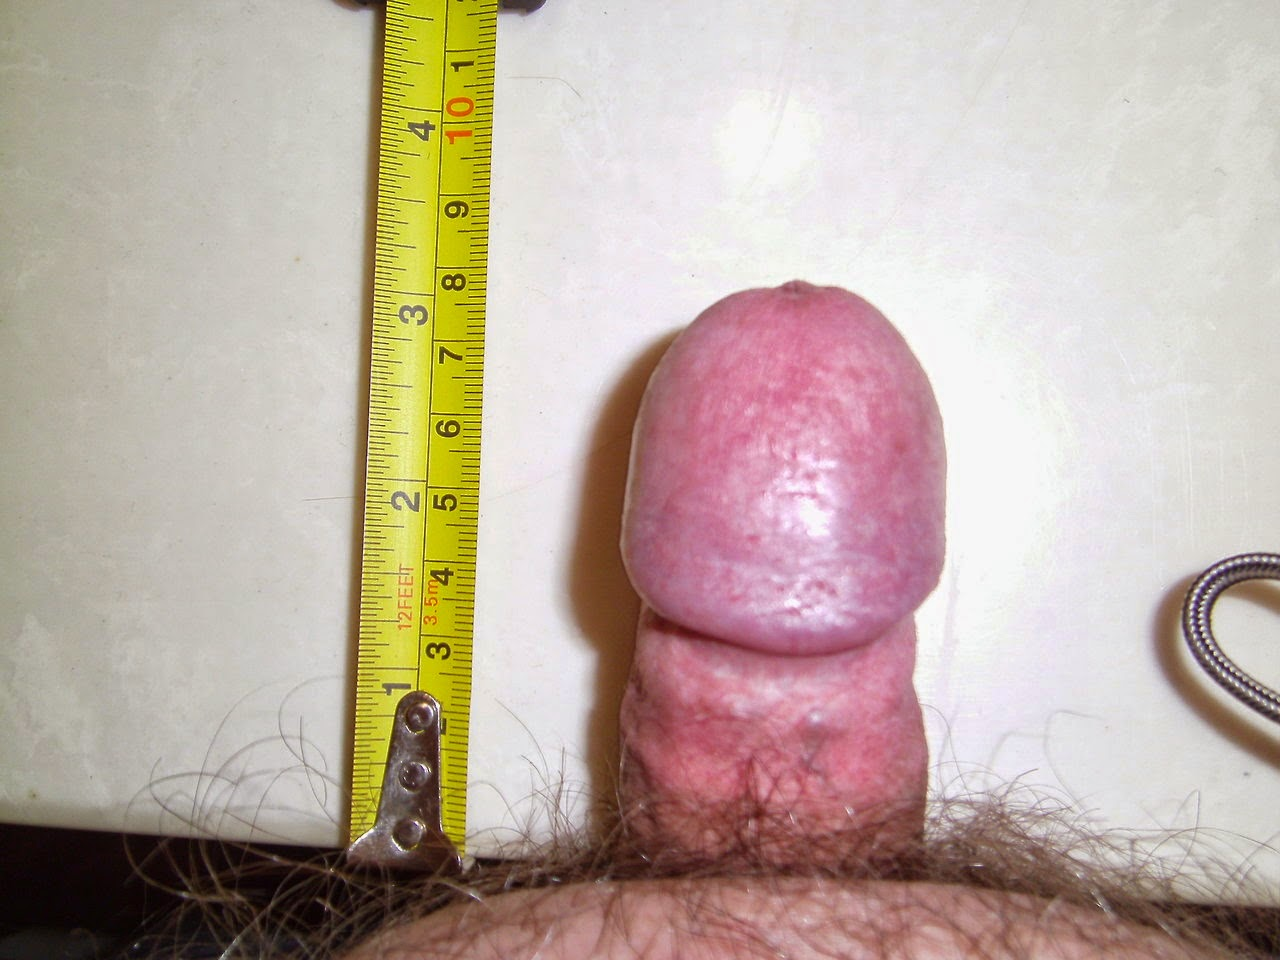 erect 3.5 inches micropenis